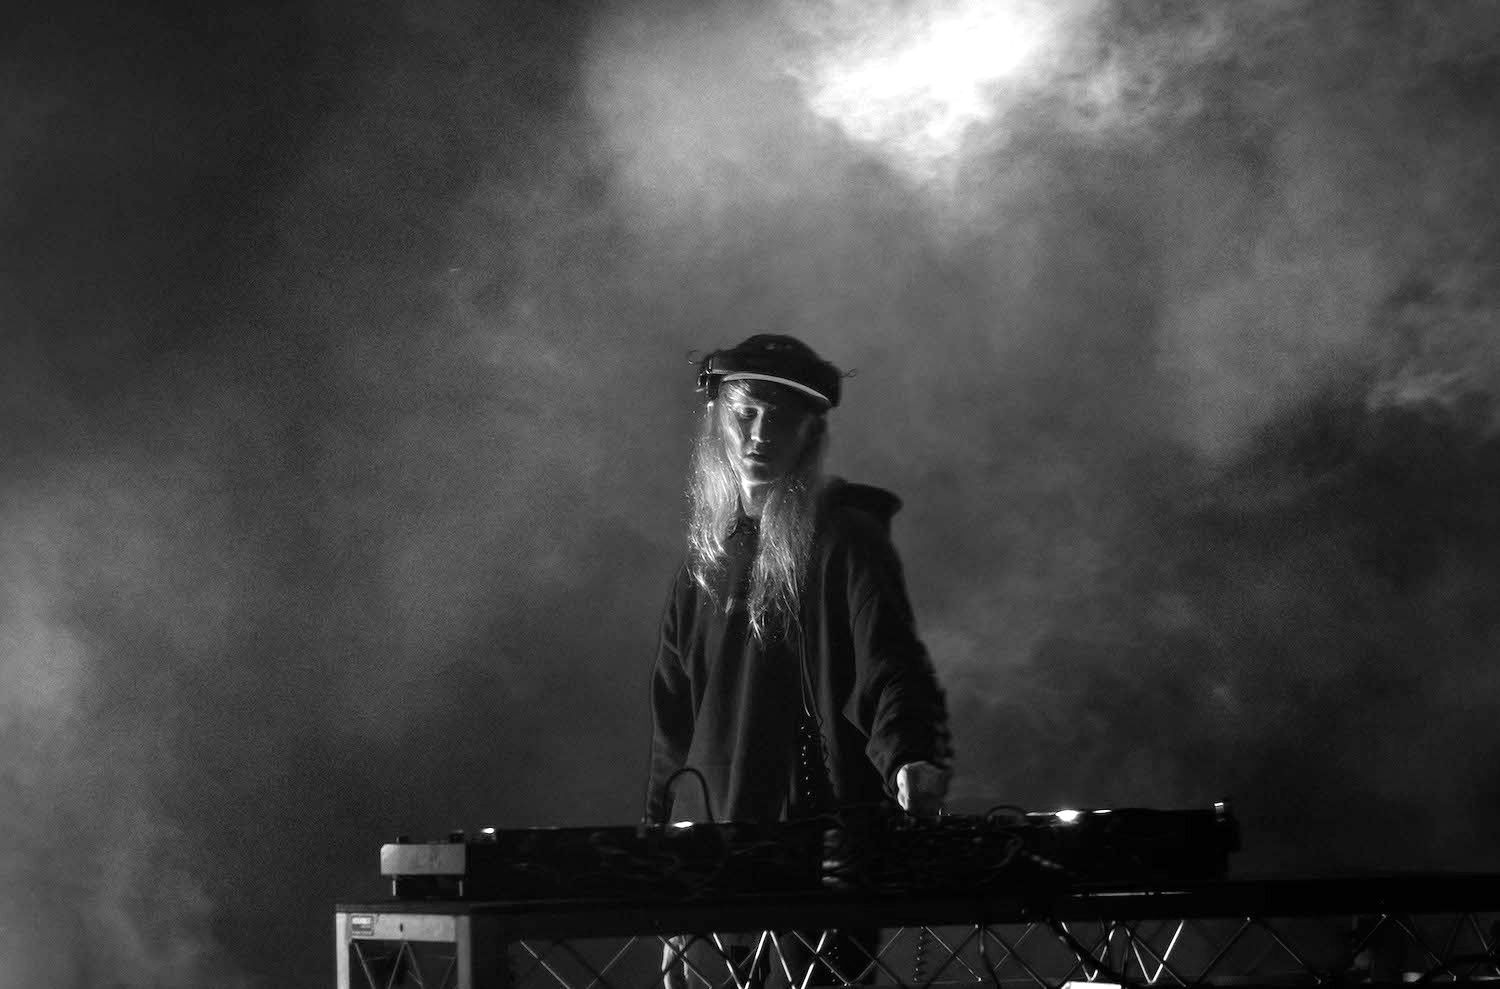 cashmere cat music live review sydney photo credit dominique burns blackwell savage thrills savagethrills